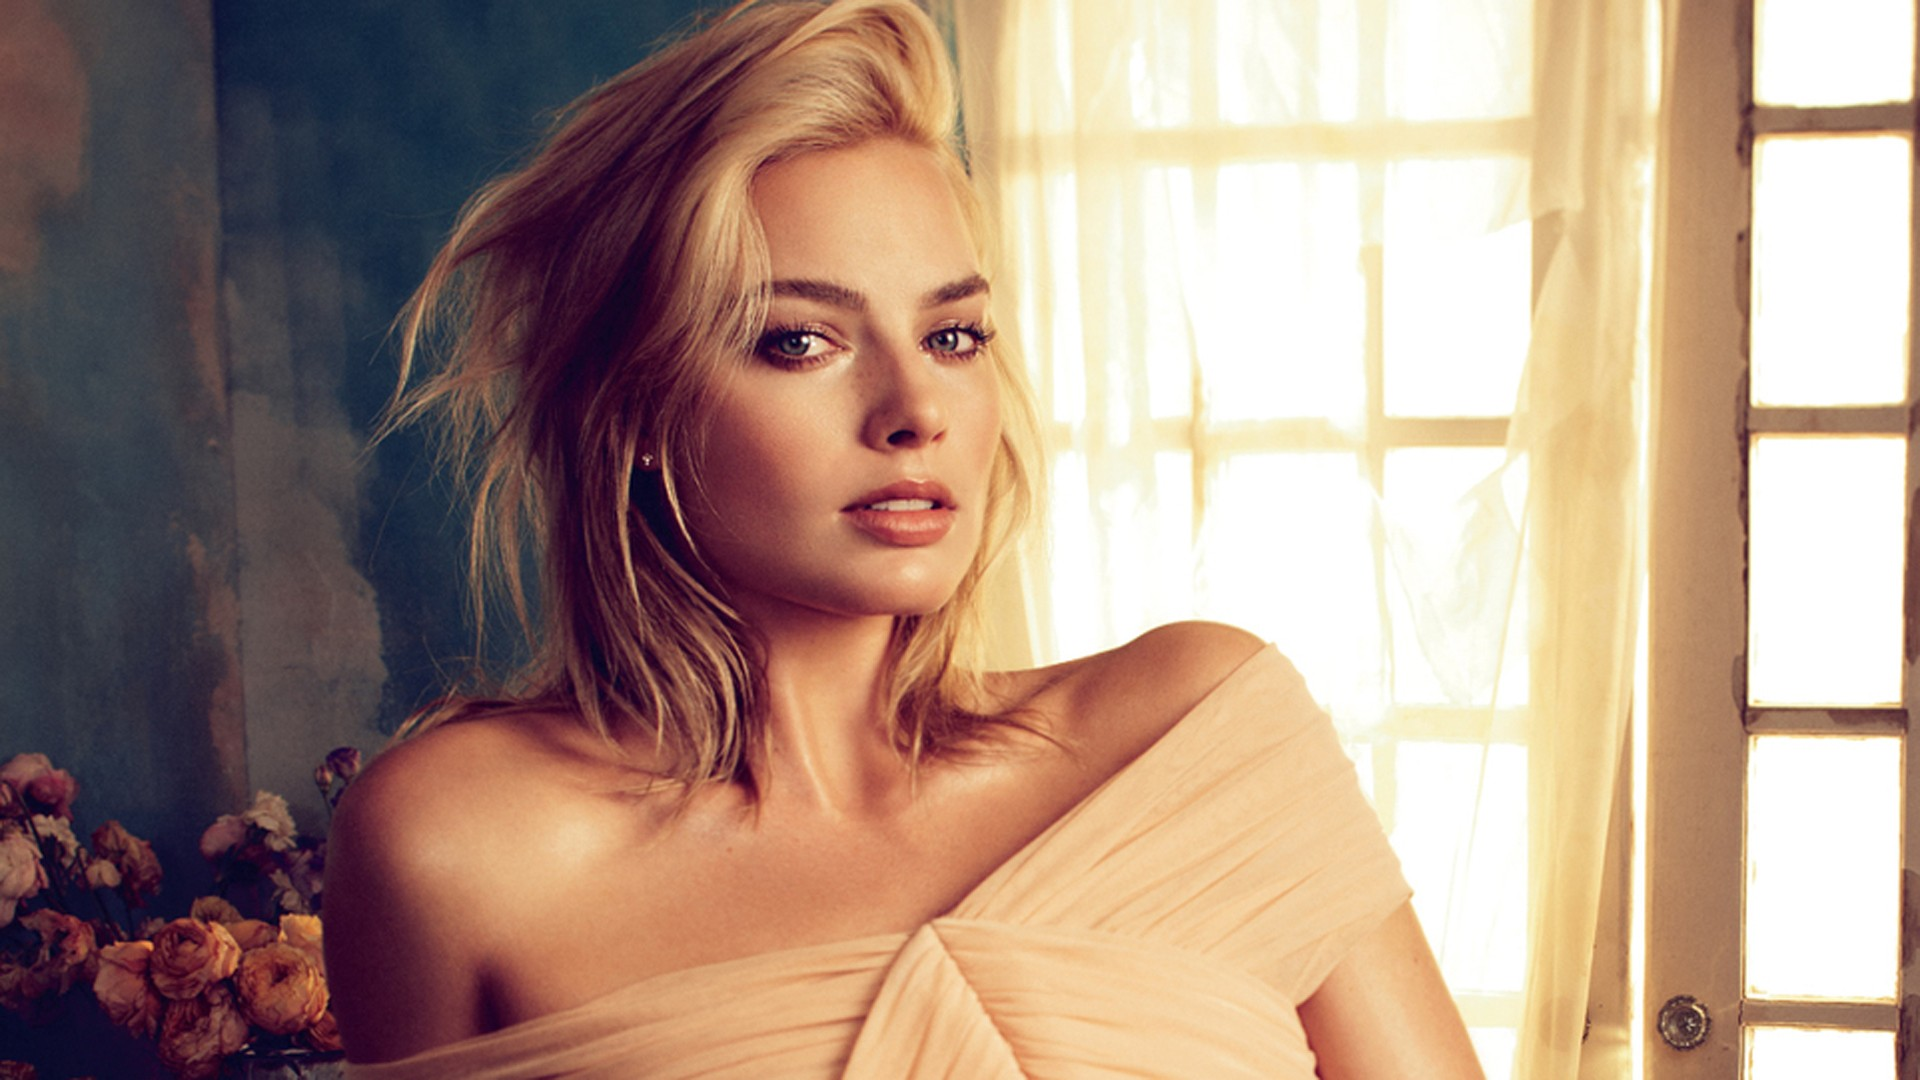 Margot Robbie wallpaper ·① Download free wallpapers for ...